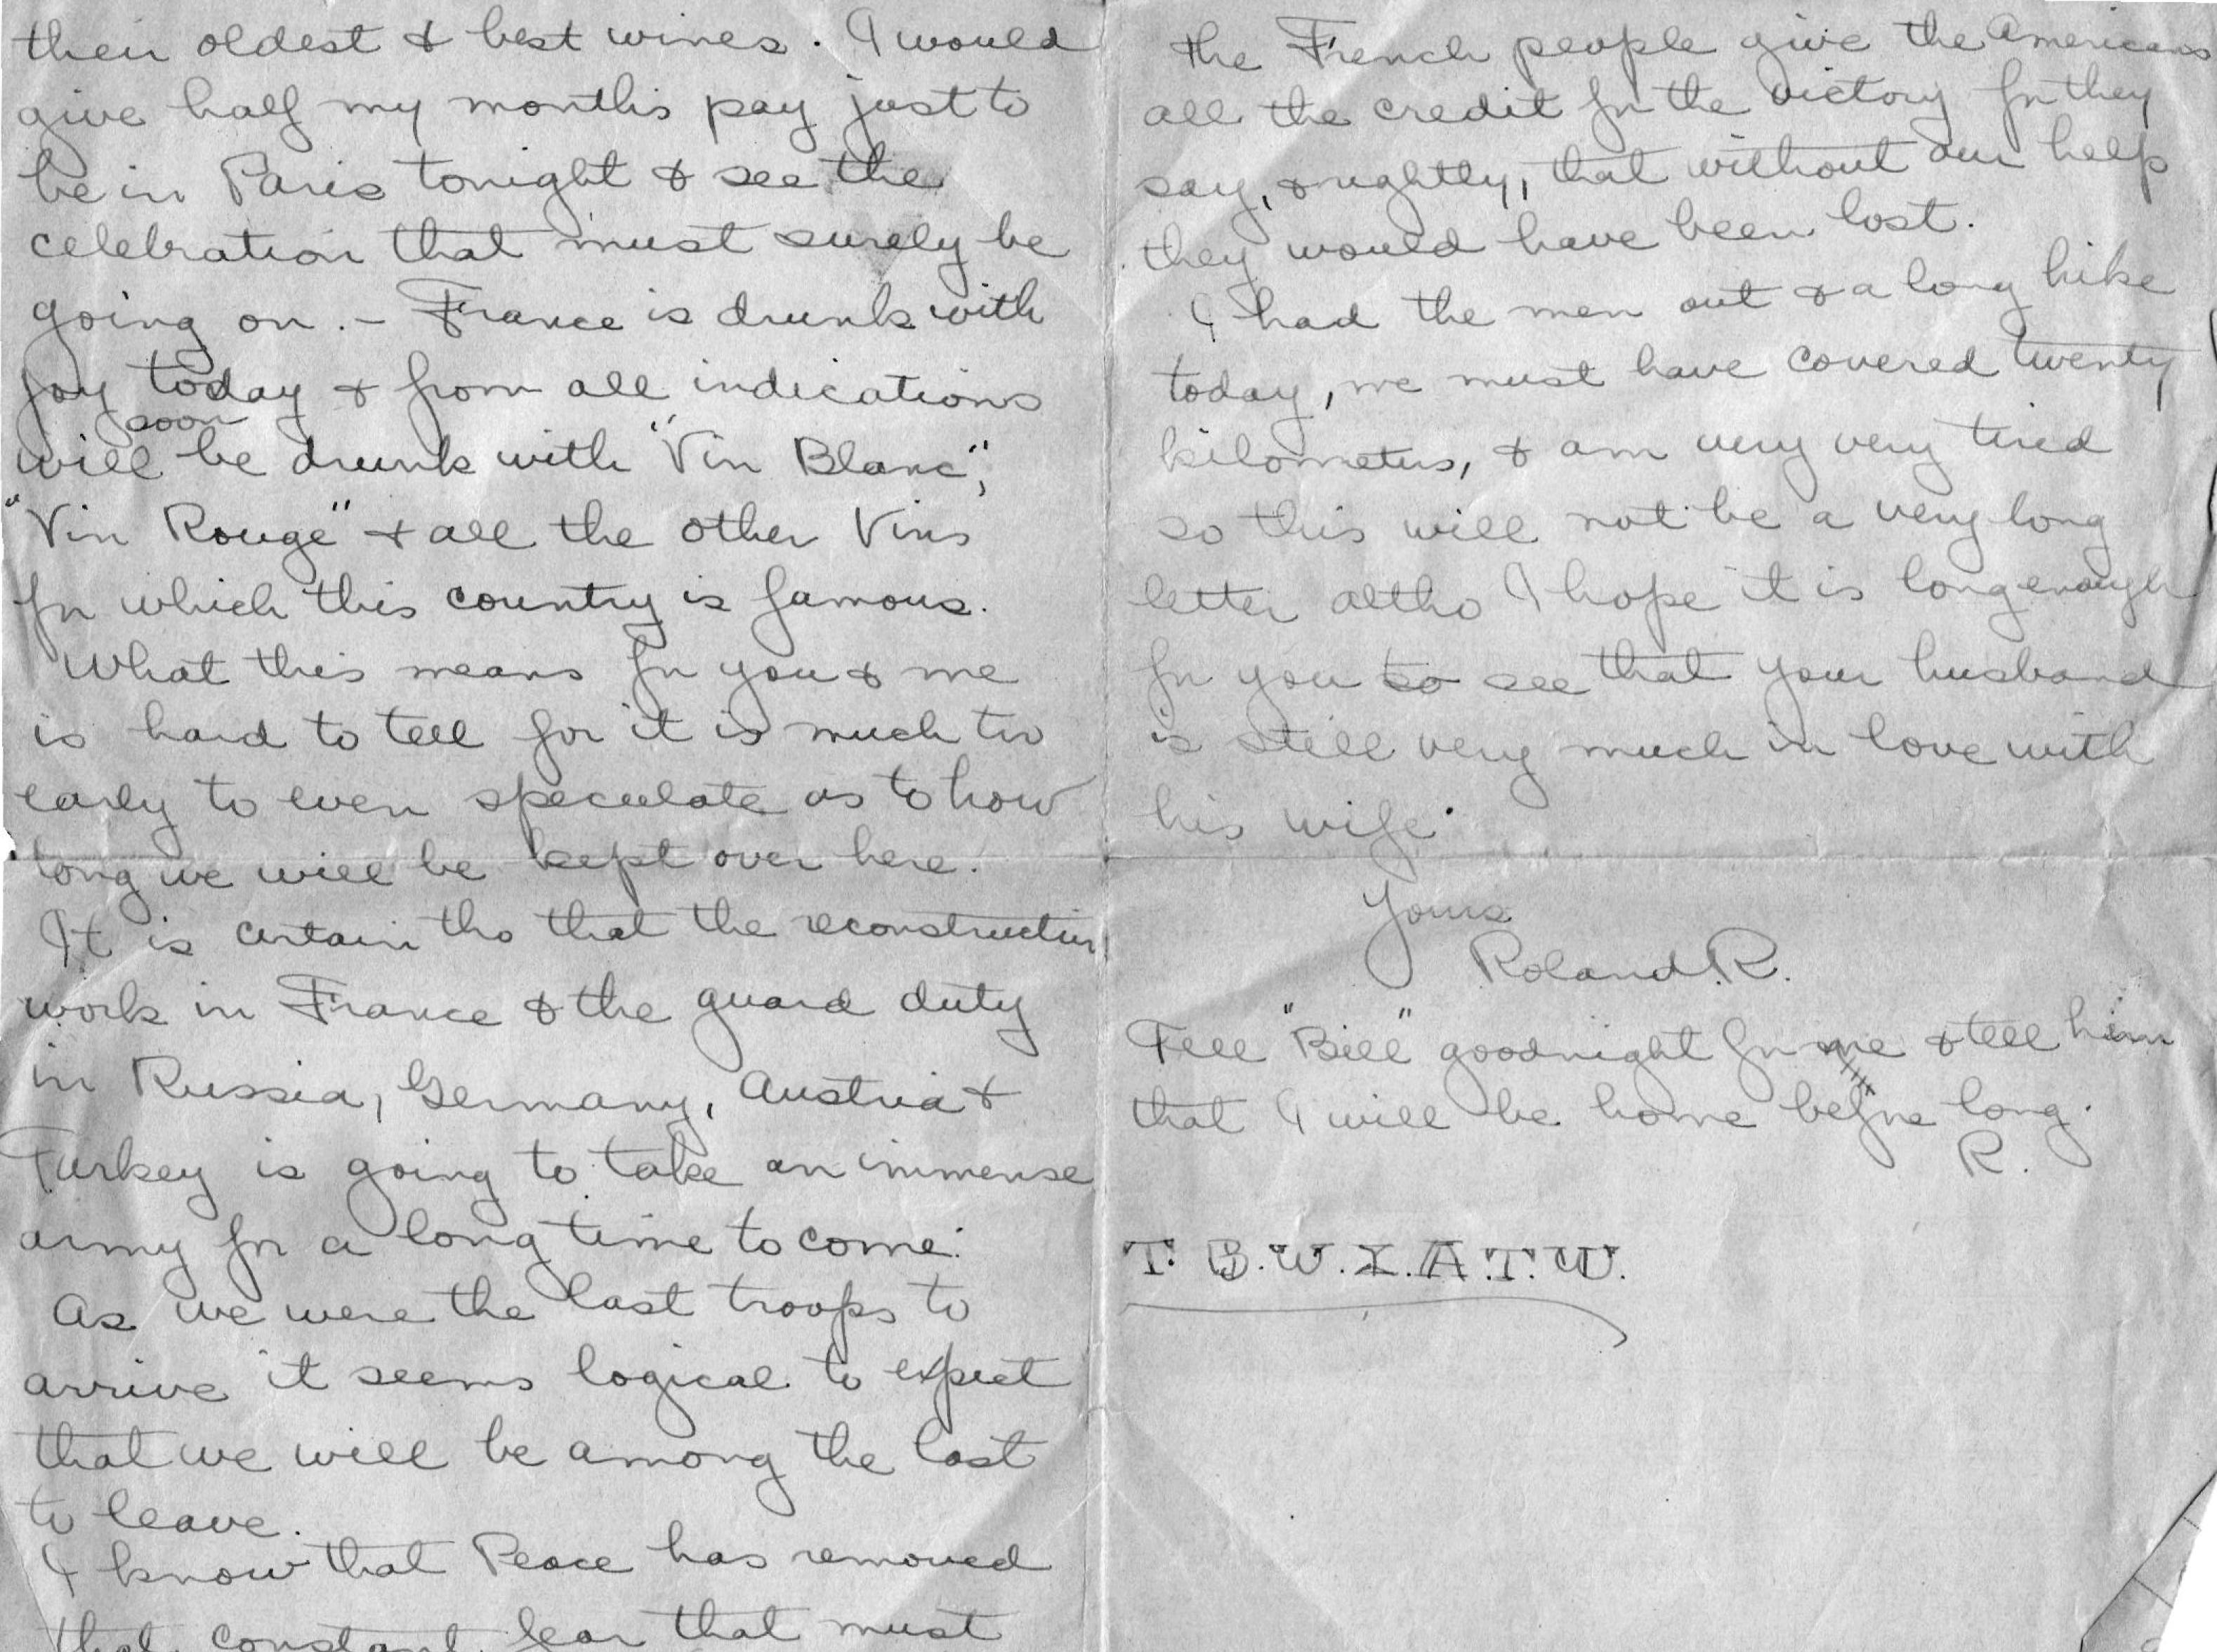 A letter from Lolo to his wife on Nov. 11, 1918, describing celebrations all over France on Armistice Day.